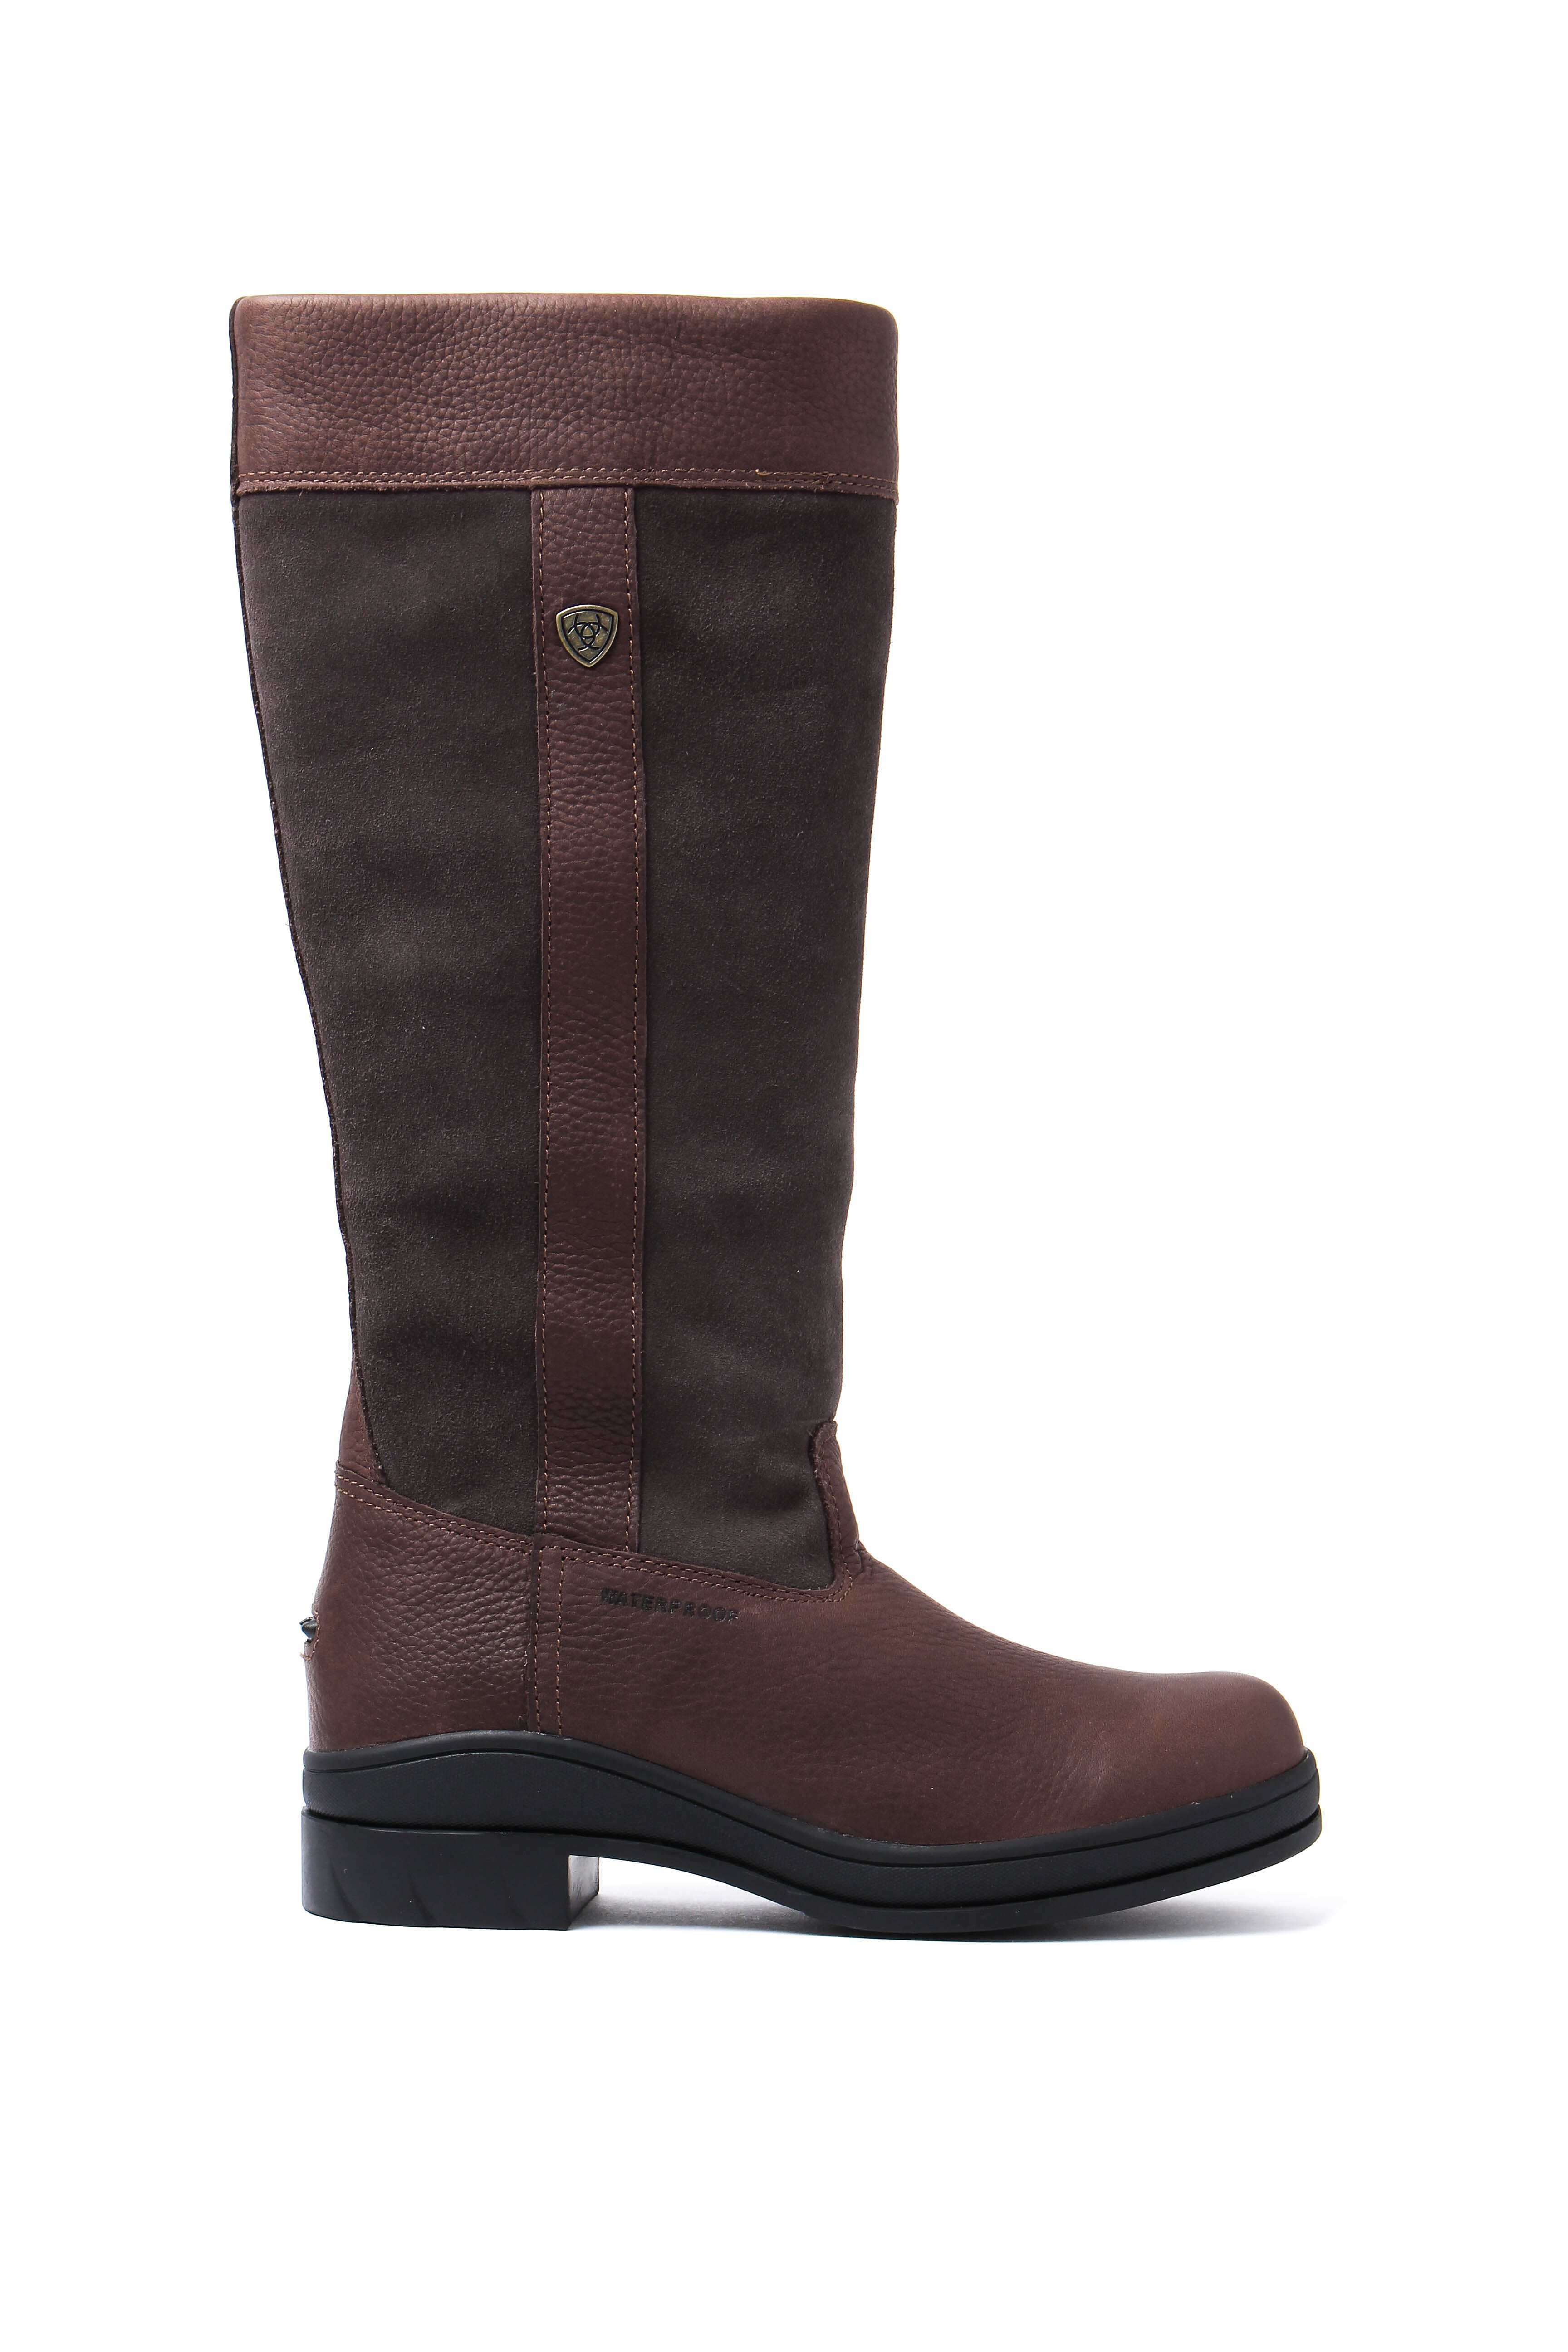 ARIAT Women's Windermere H20 Boots - Brown